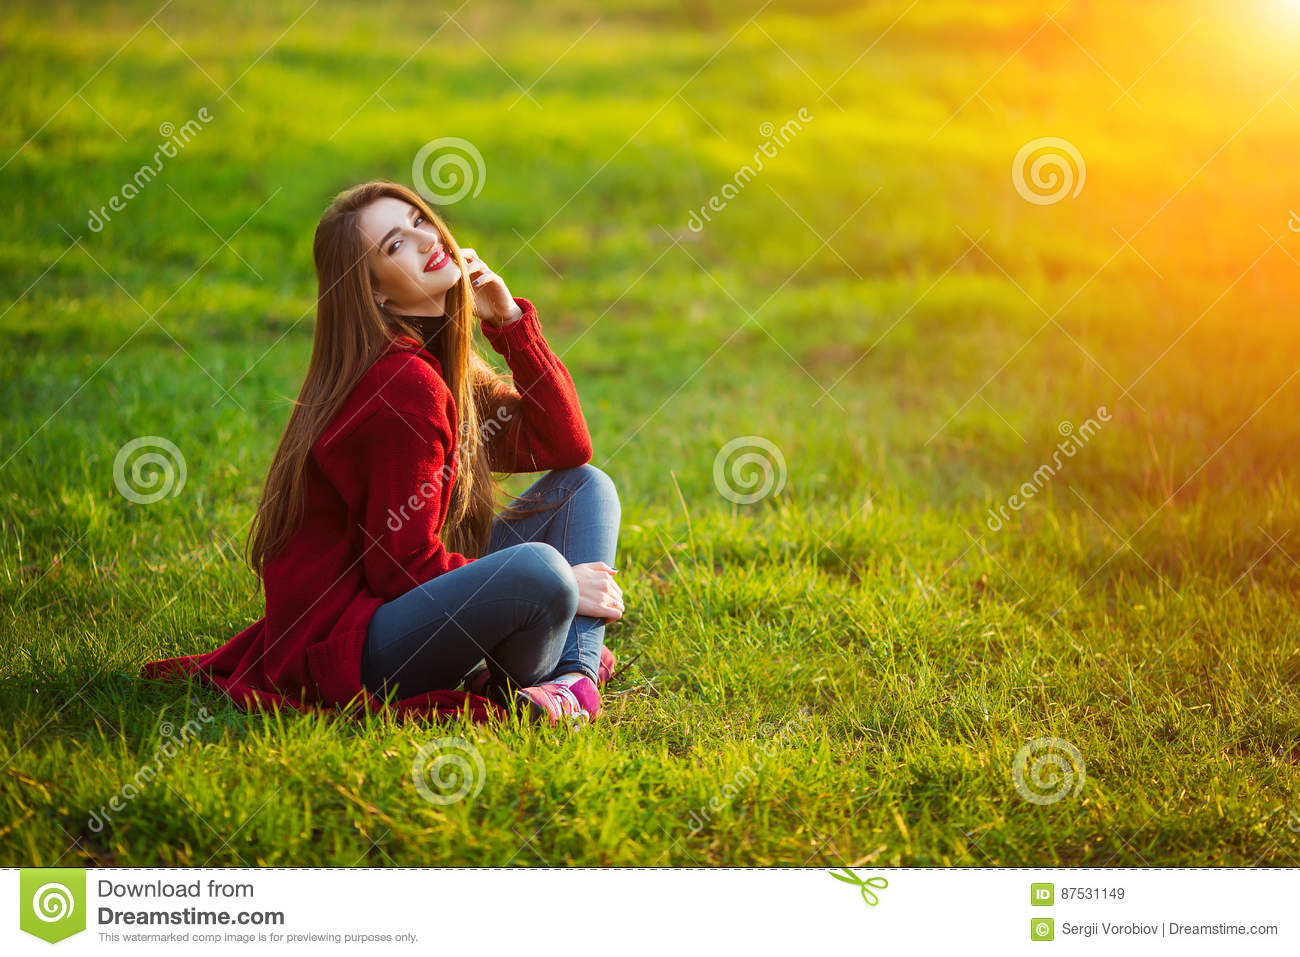 Happy young woman. Beautiful female with long healthy hair enjoying sun light in park sitting on green grass. Spring